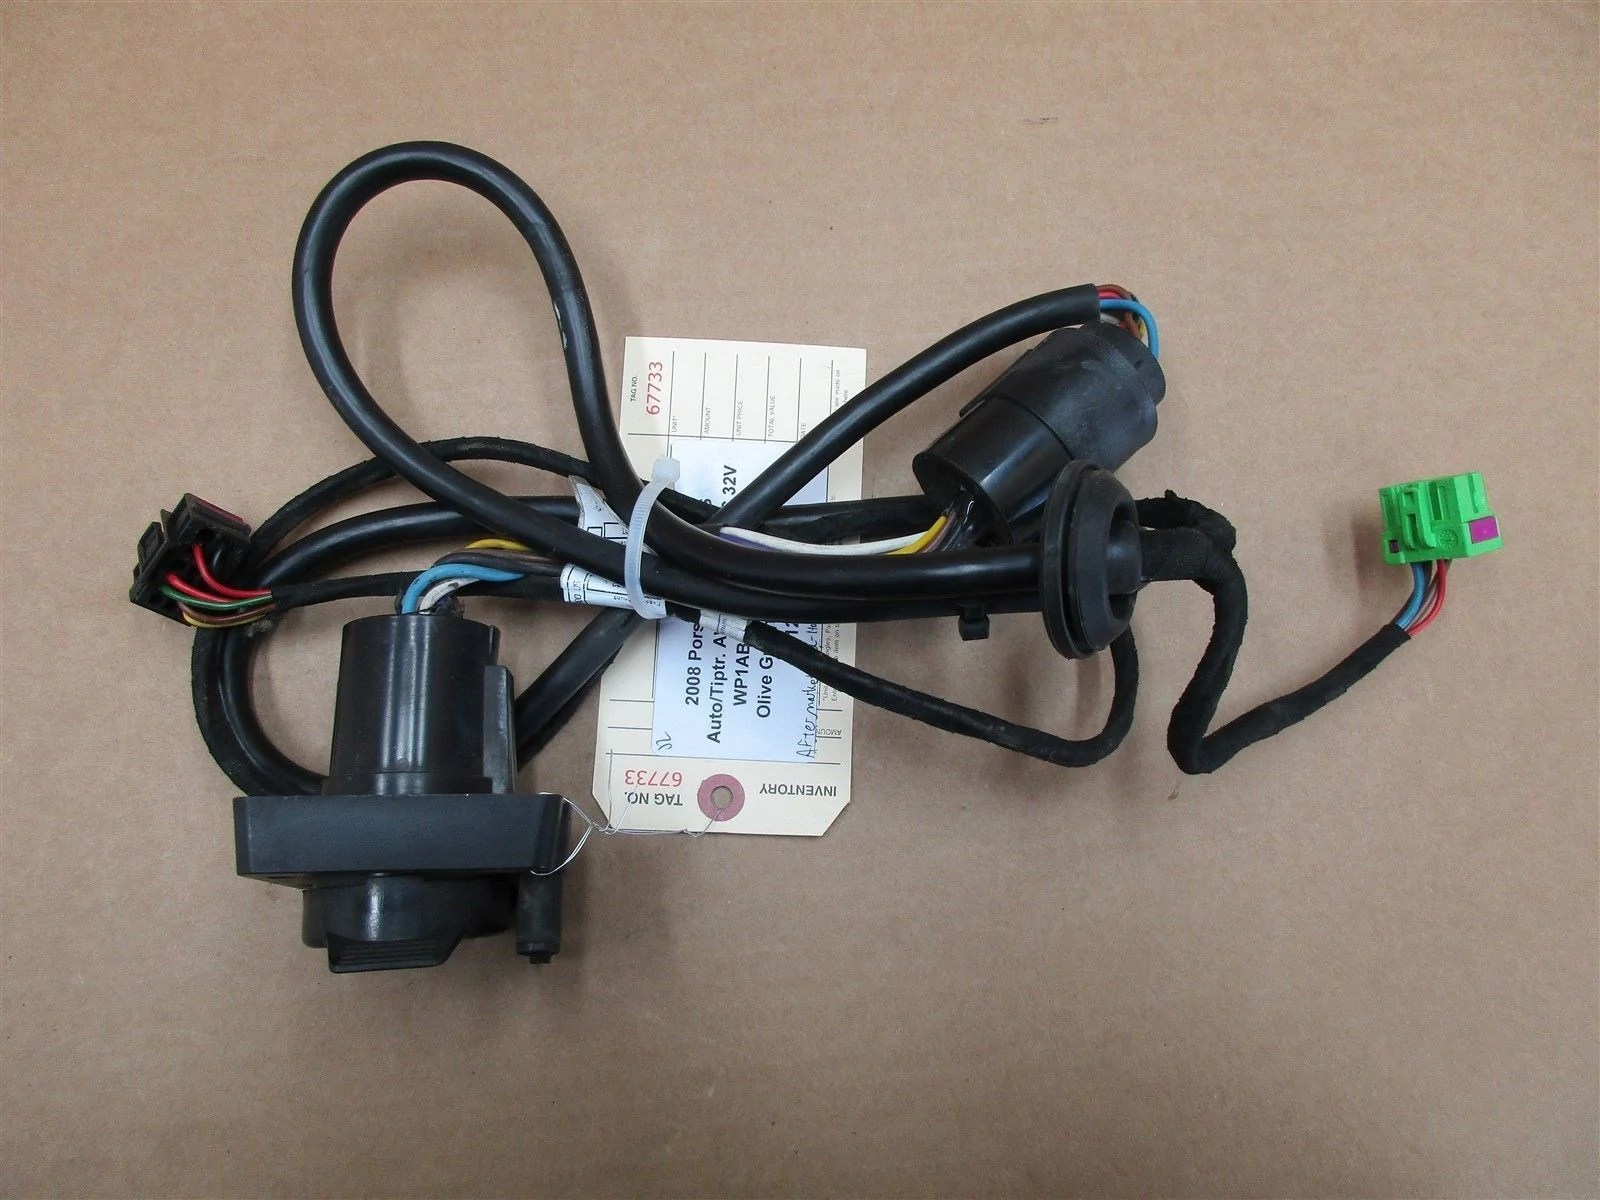 small resolution of 08 cayenne s porsche 957 aftermarket wiring harness u haul 327007321003 122 873